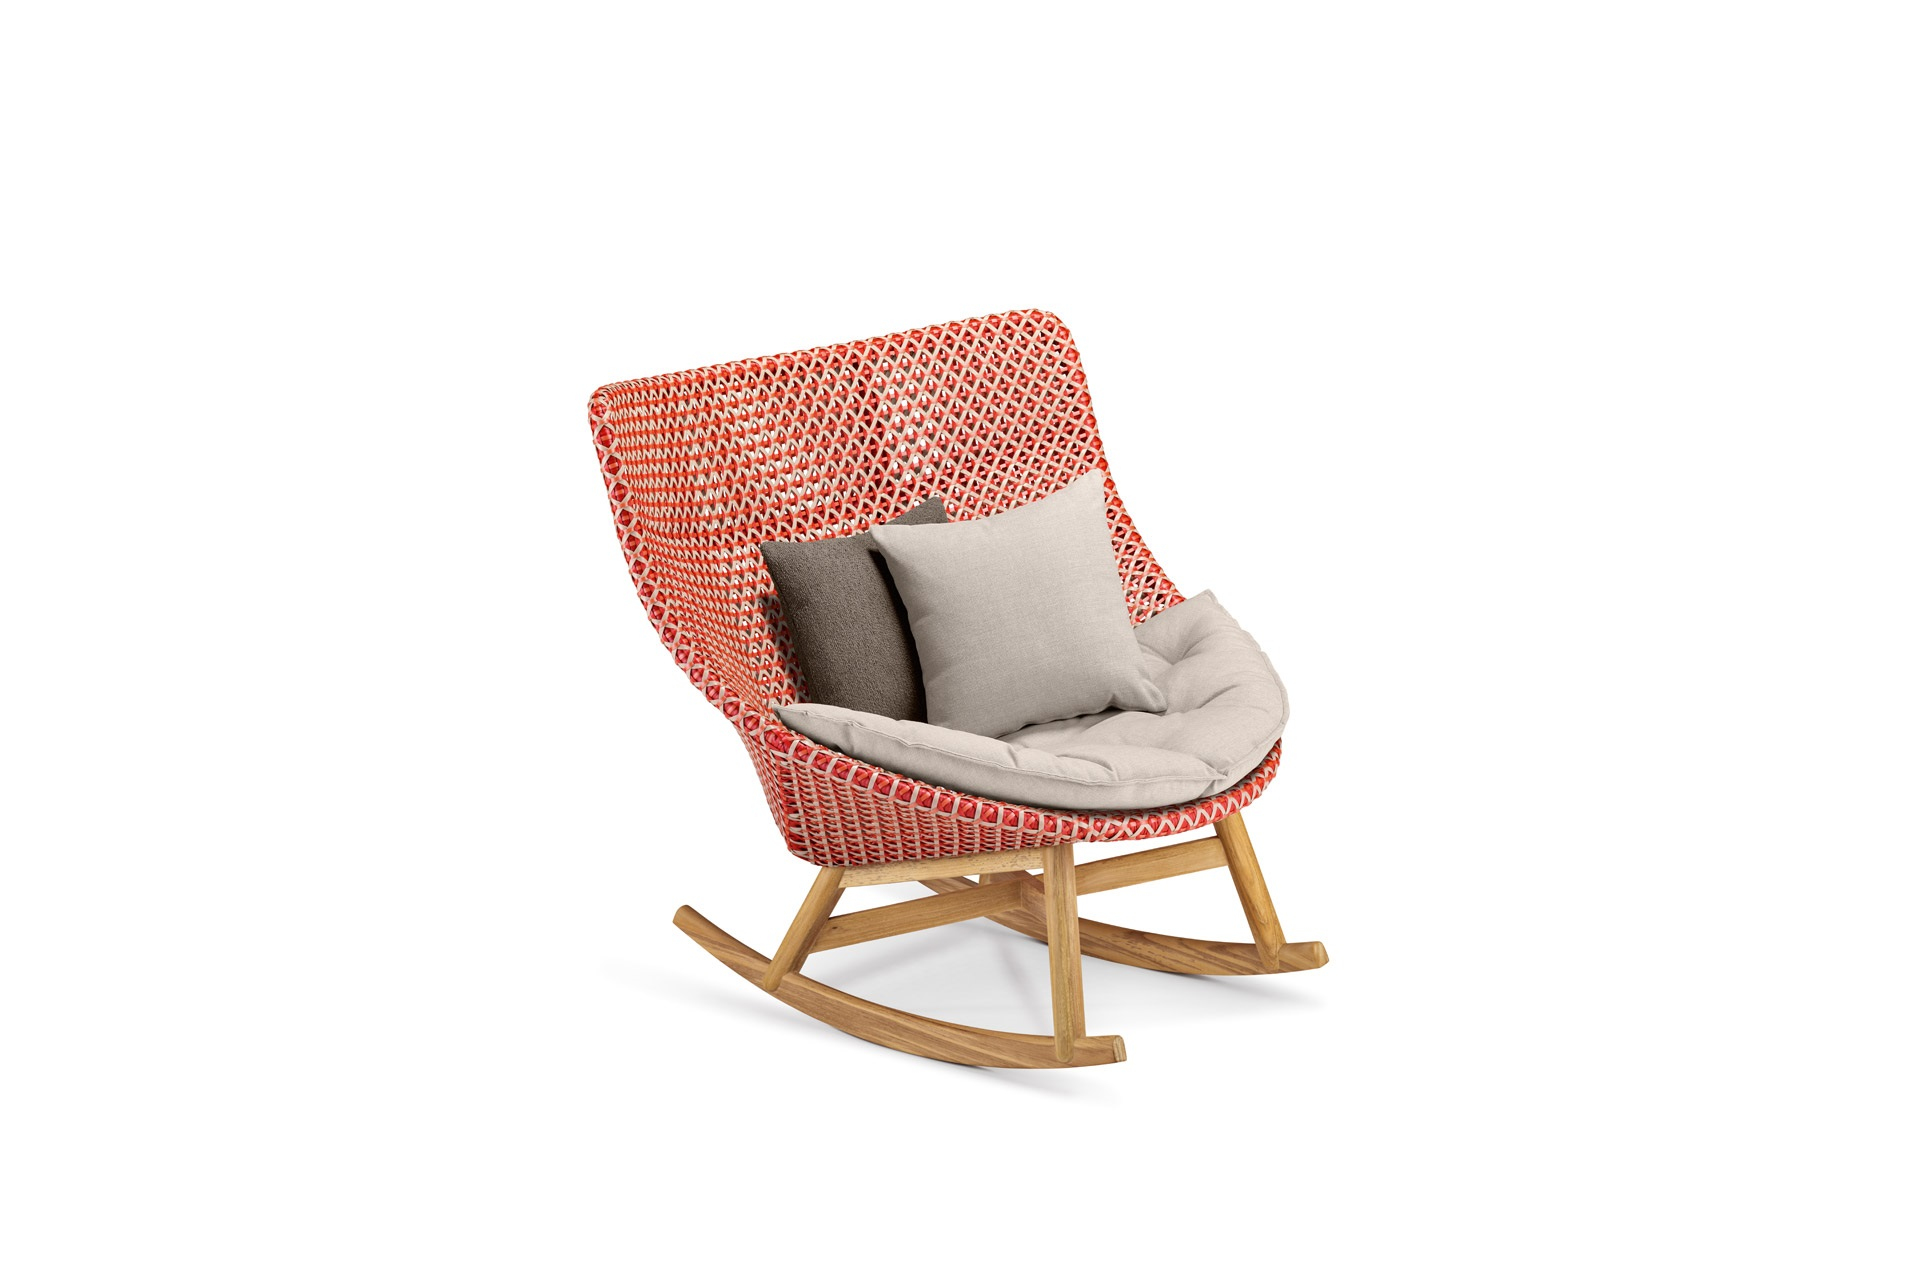 DEDON-Mbrace-Rocking-chair-decocushion-spice